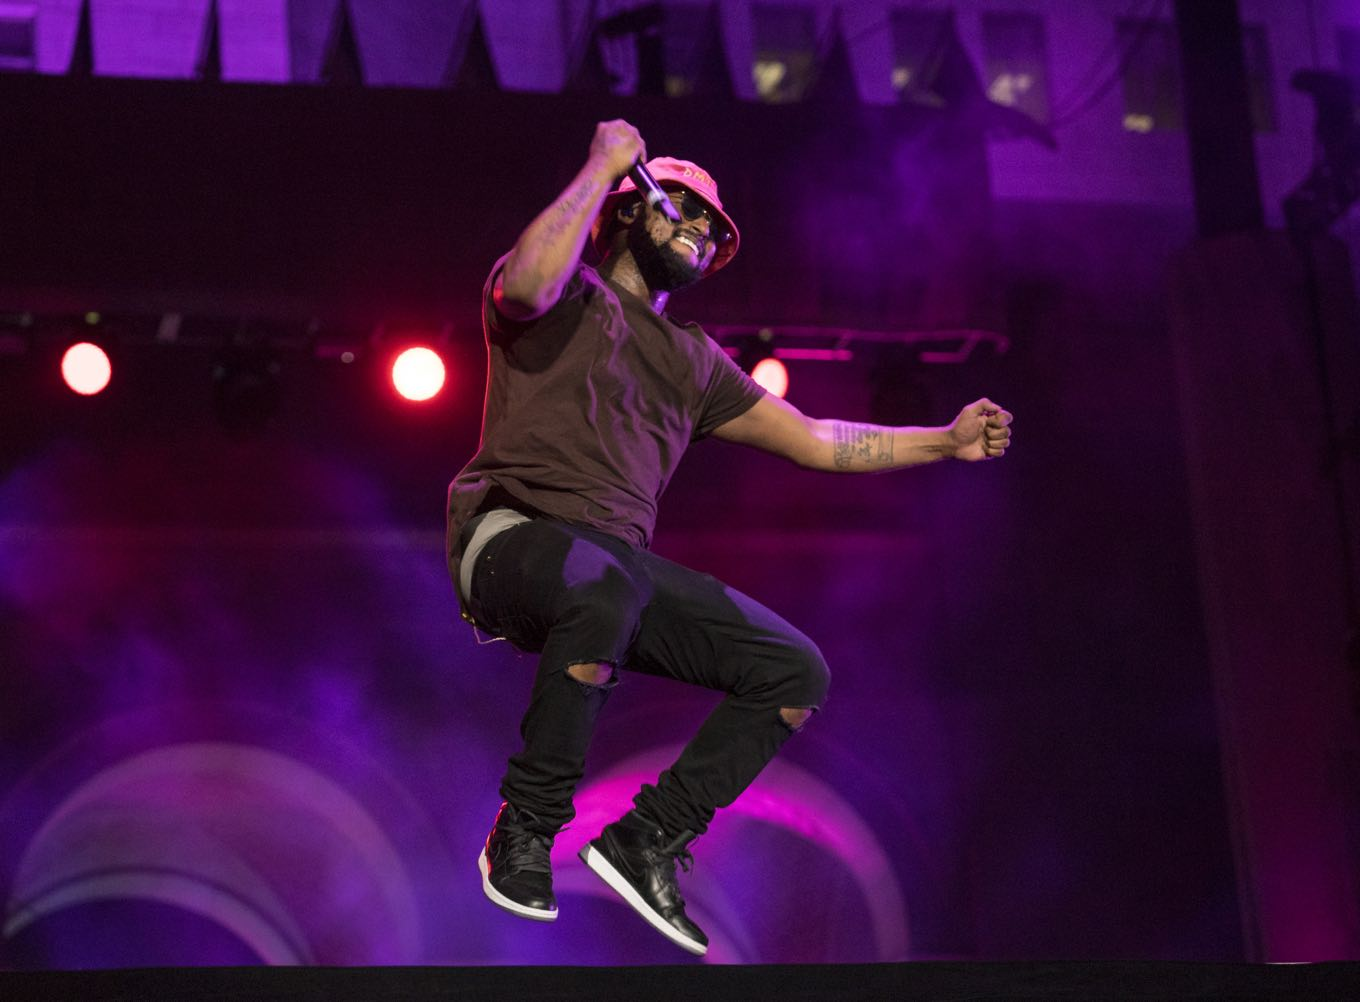 ScHoolboy Q performs at Made in America LA 2014 (Photo by: Kayla Merrill)